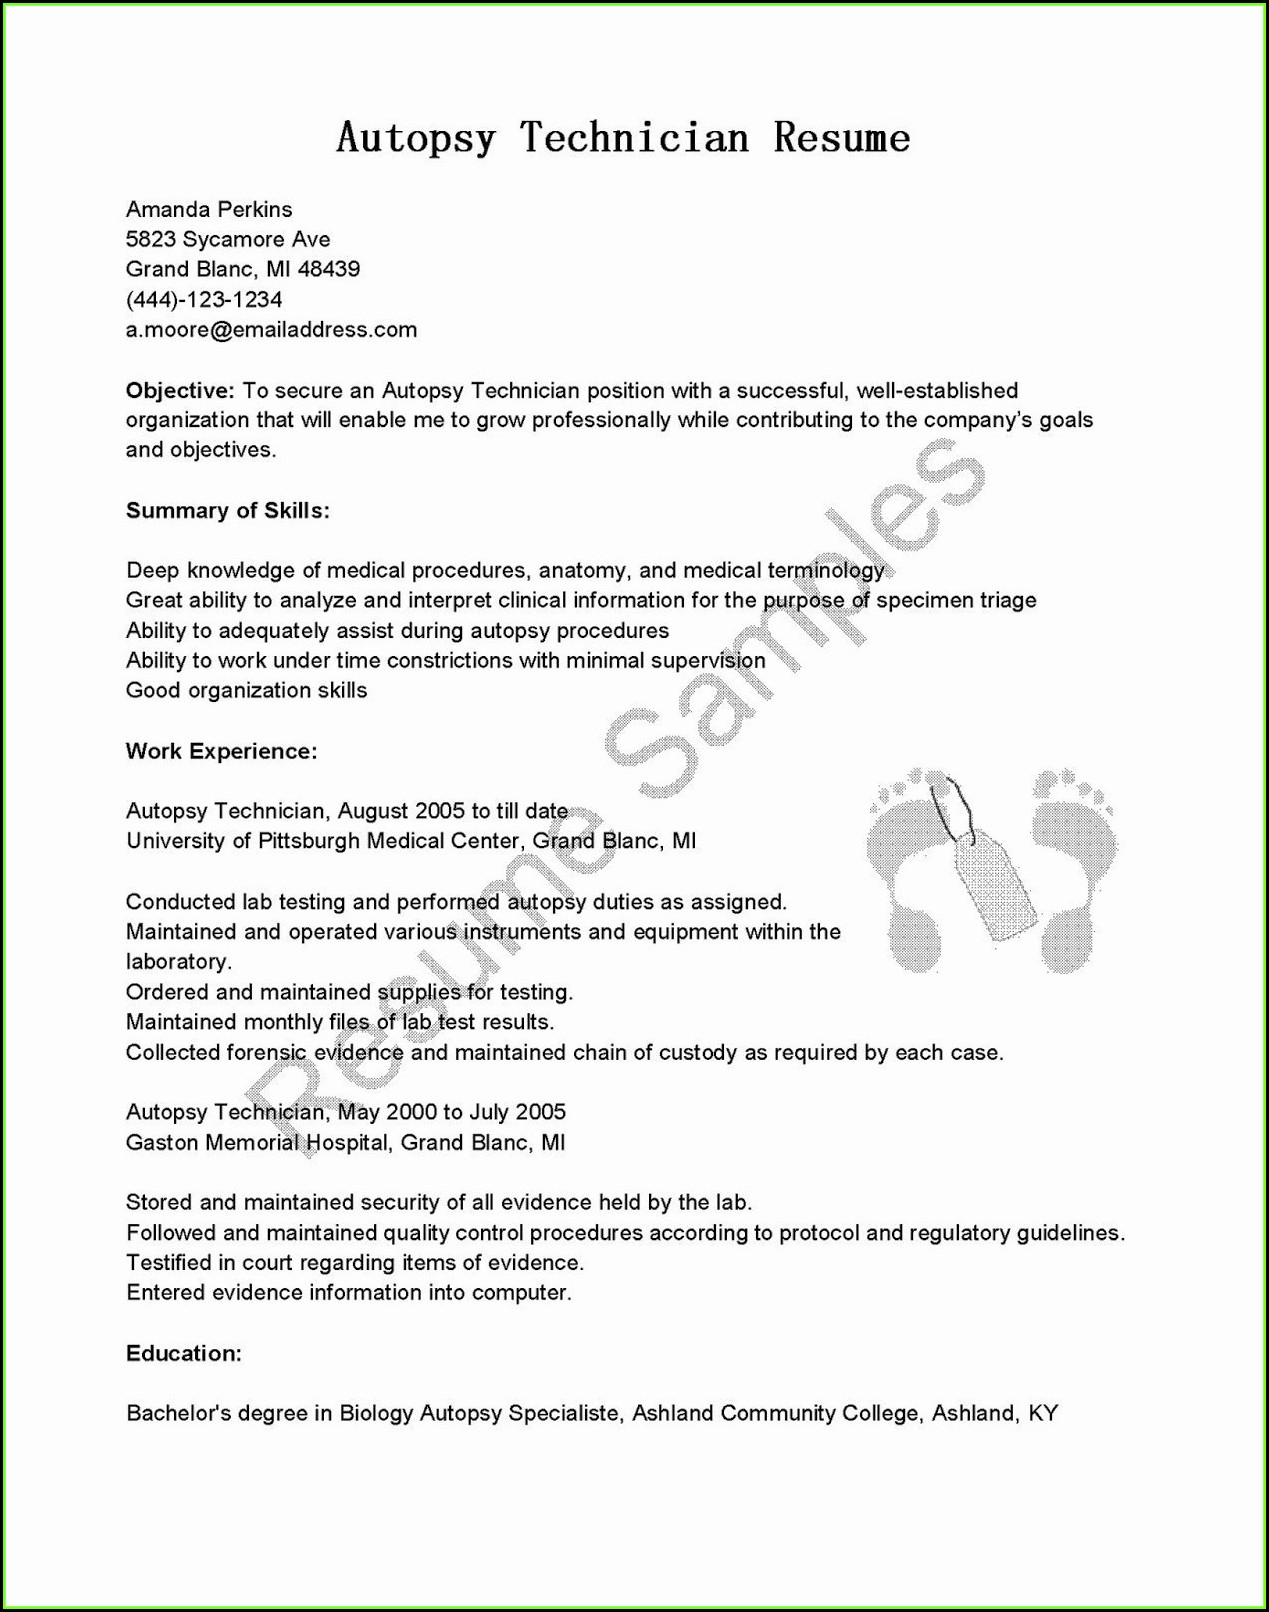 Free Resume Builder To Save To Computer